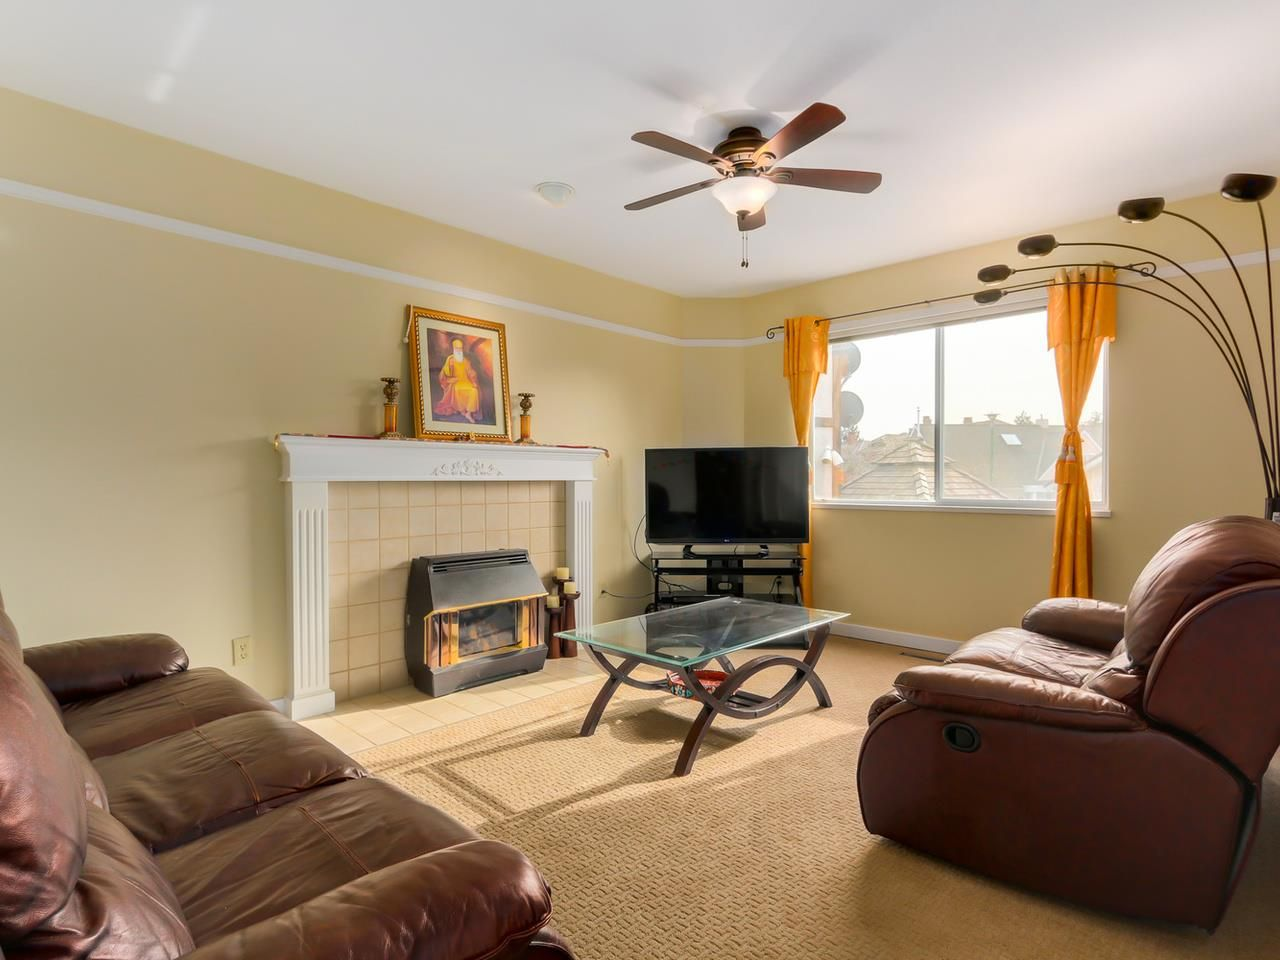 """Photo 11: Photos: 2868 TEMPE KNOLL Drive in North Vancouver: Tempe House for sale in """"TEMPE"""" : MLS®# R2046593"""